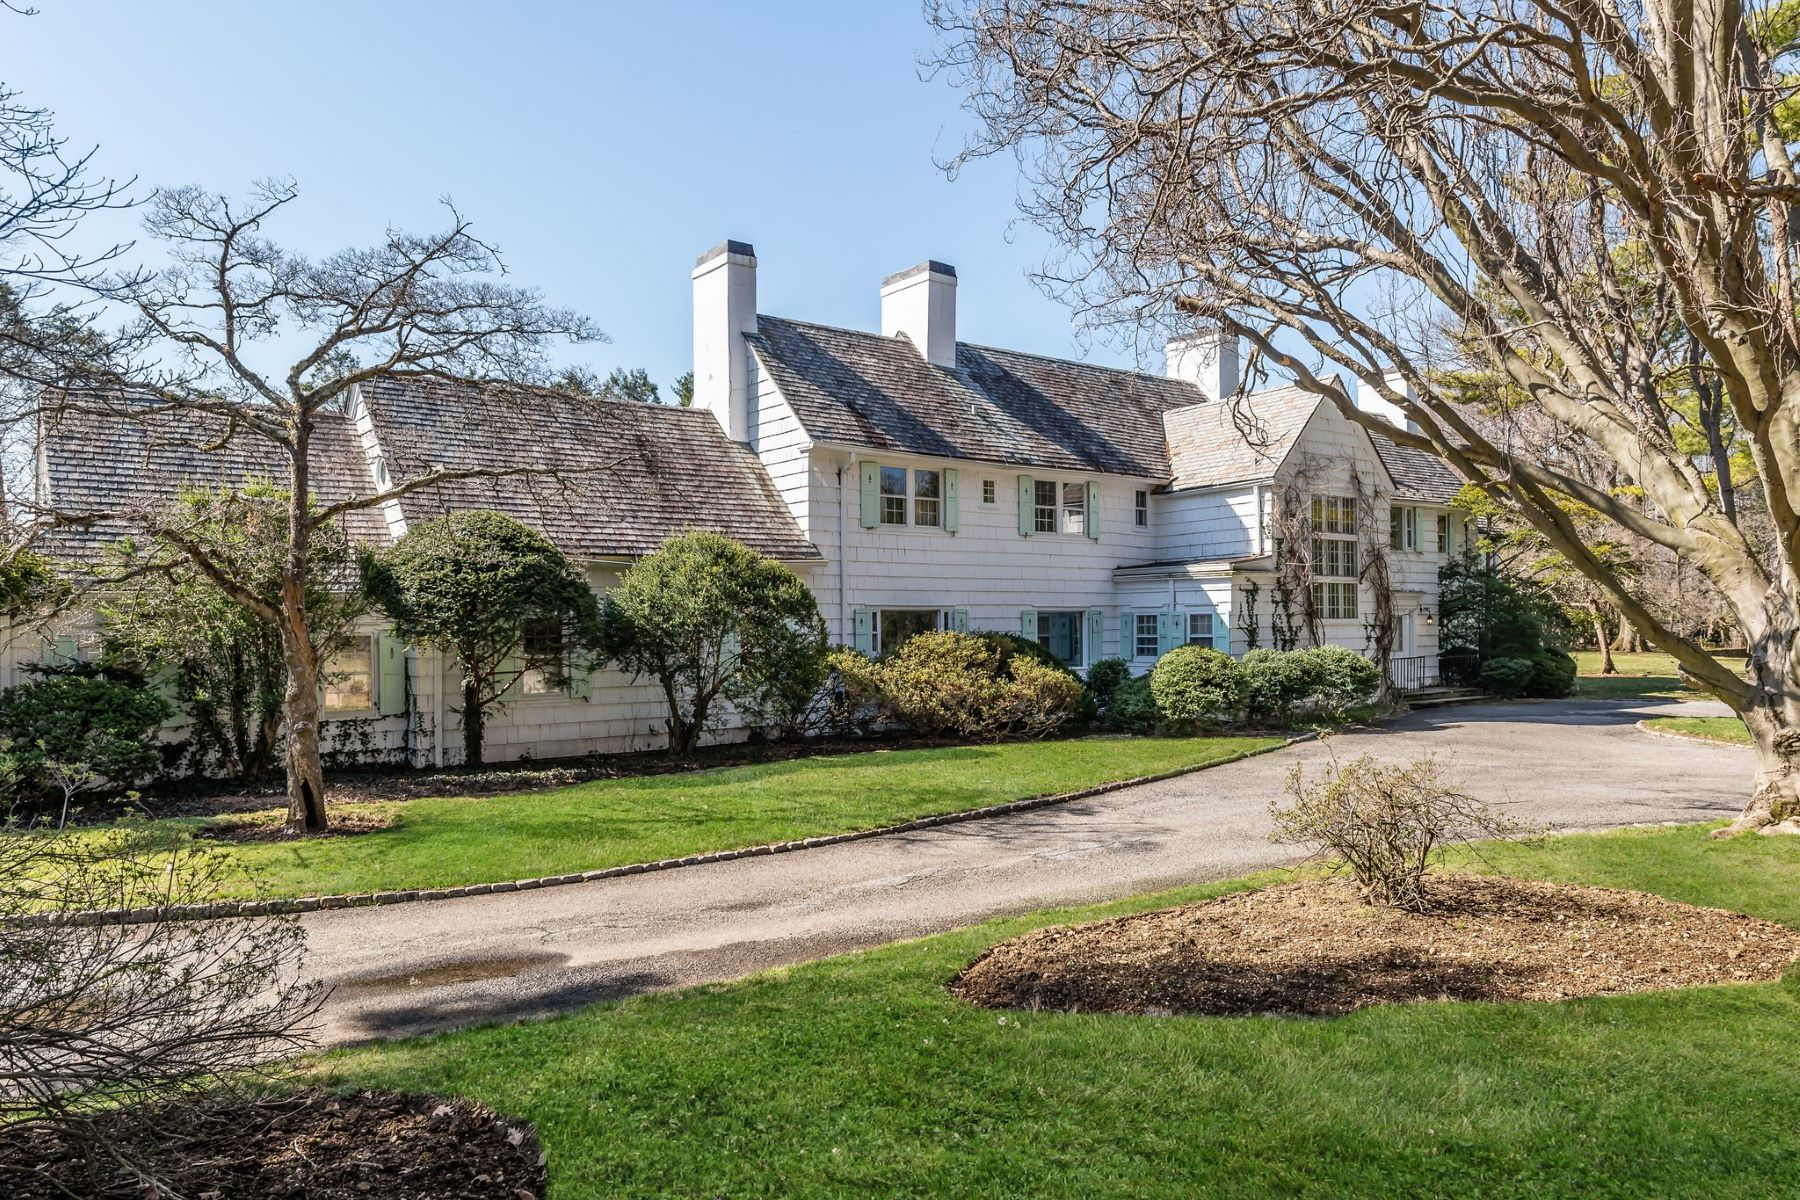 Single Family Homes for Sale at Glen Cove 10 Meadowspring Ln Glen Cove, New York 11542 United States